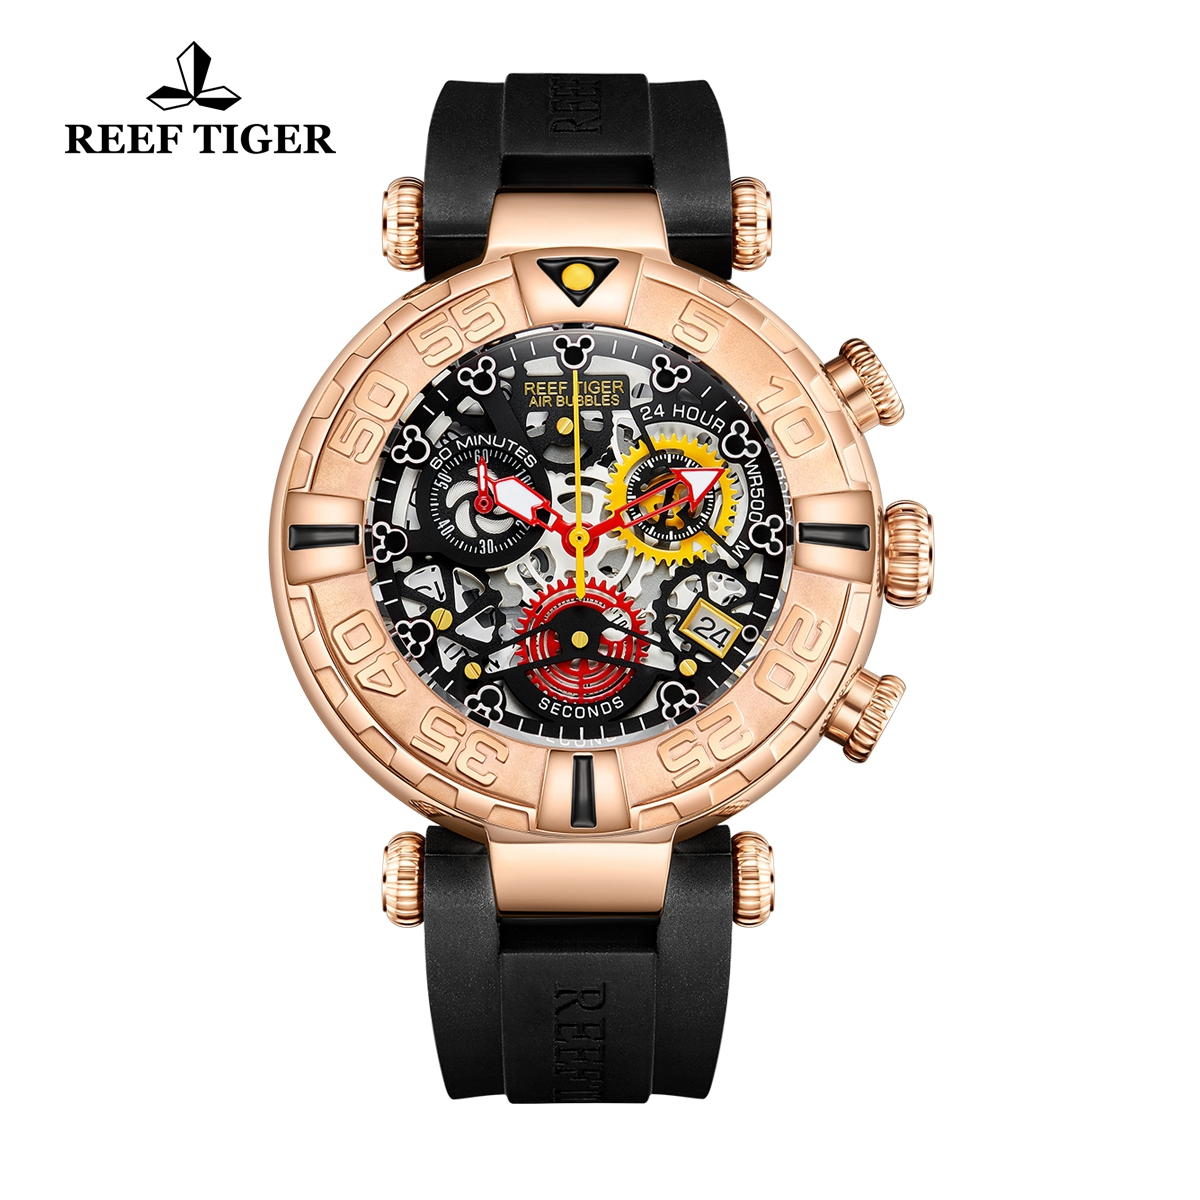 Reef Tiger Aurora Air Bubbles Fashion Rose Gold Rubber Strap Skeleton Dial Quartz Watch RGA3059-S-PBBB